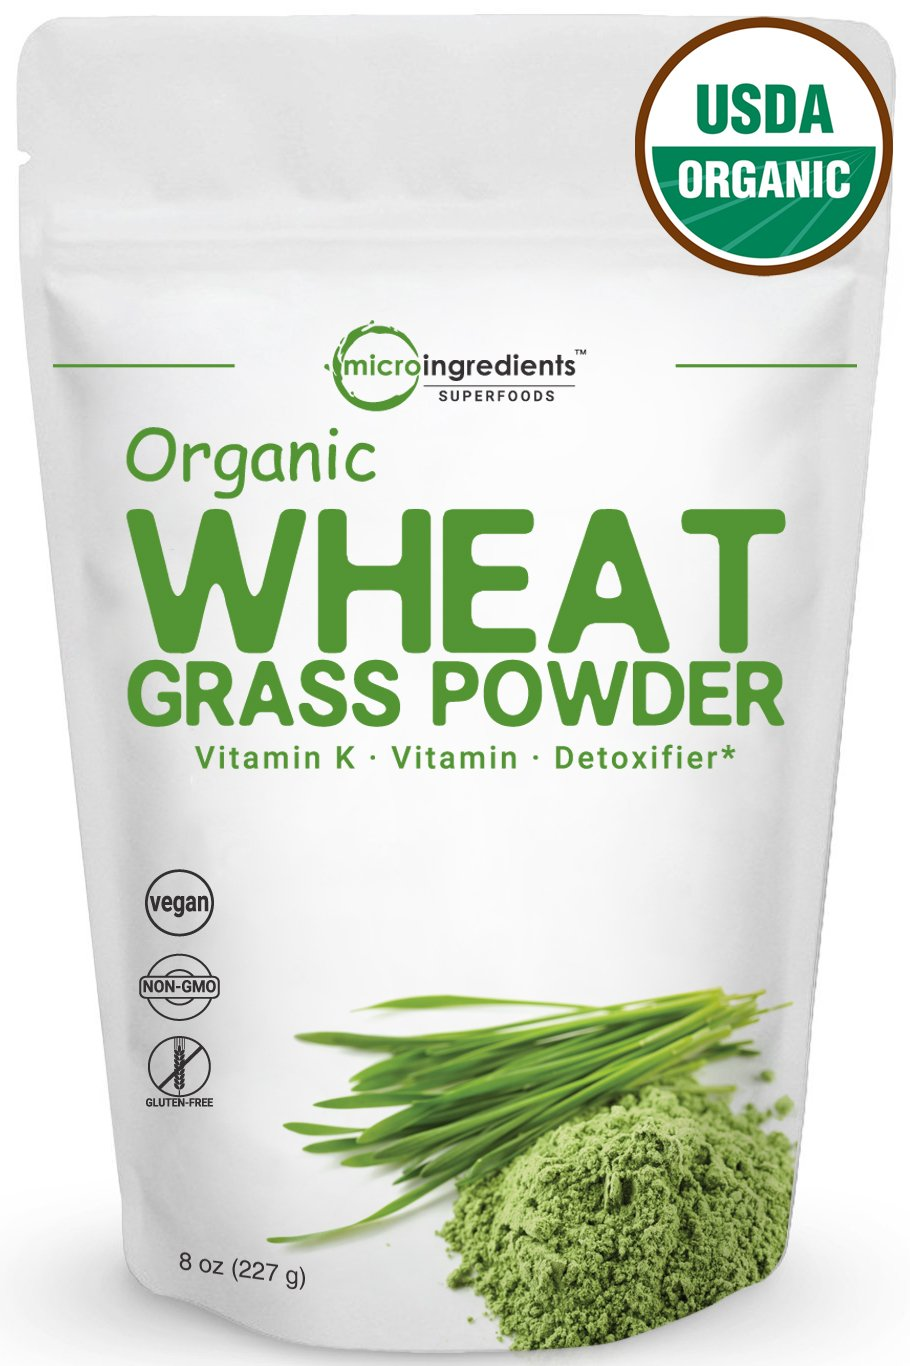 Sustainably US Grown, Organic Wheat Grass Powder, 75 Serving (8 Ounce), Rich Fiber, Chlorophyll, Antioxidants, Essential Amino Acids, Fatty Acids, Minerals & Vitamins. Best Vegan & Non-GMO Superfoods.